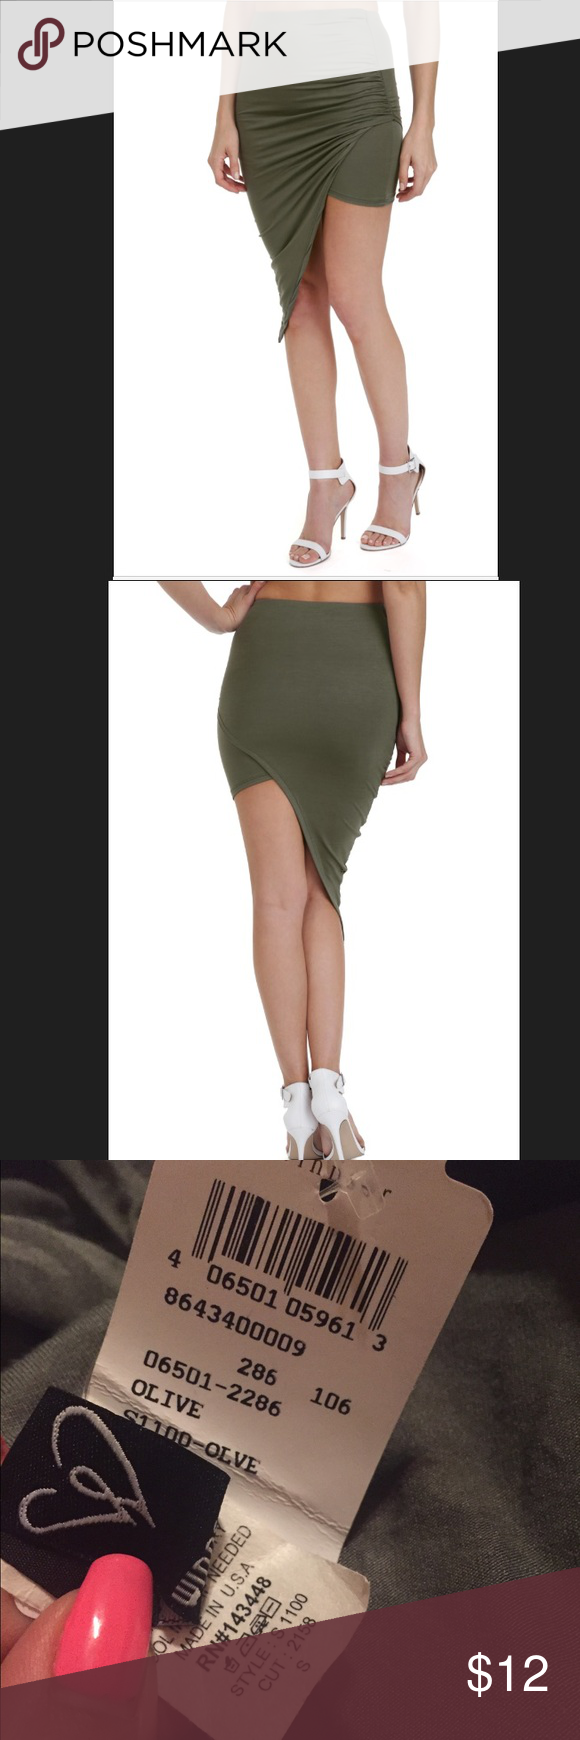 Windsor asymmetrical olive green skirt NWT Windsor asymmetrical olive green skirt. The perfect olive green so in season. Pair it with white, cream, gold, brown or black. NWT. WINDSOR Skirts Asymmetrical